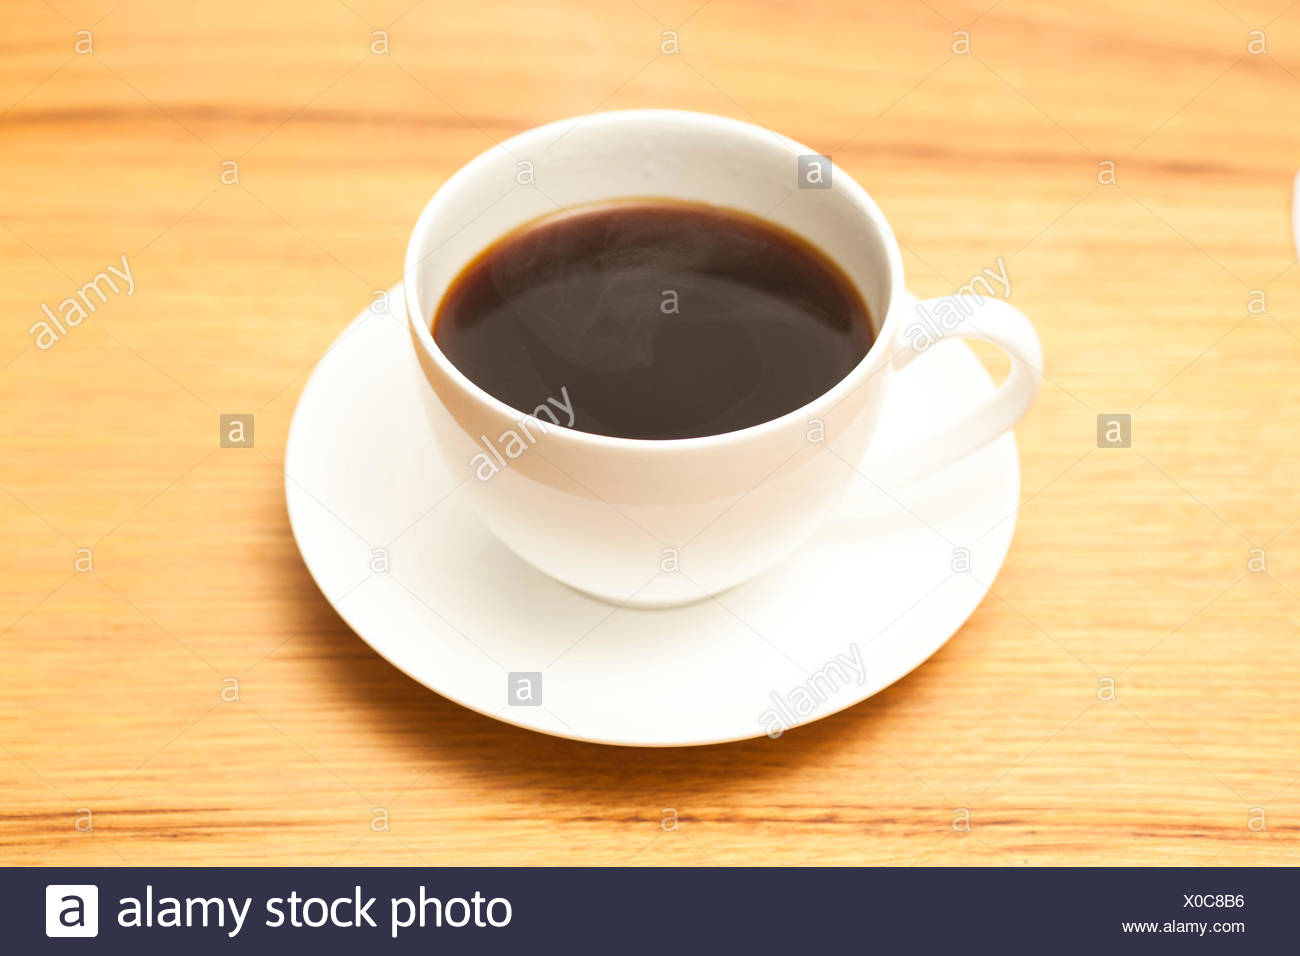 Cup of Americano Coffee - Stock Image